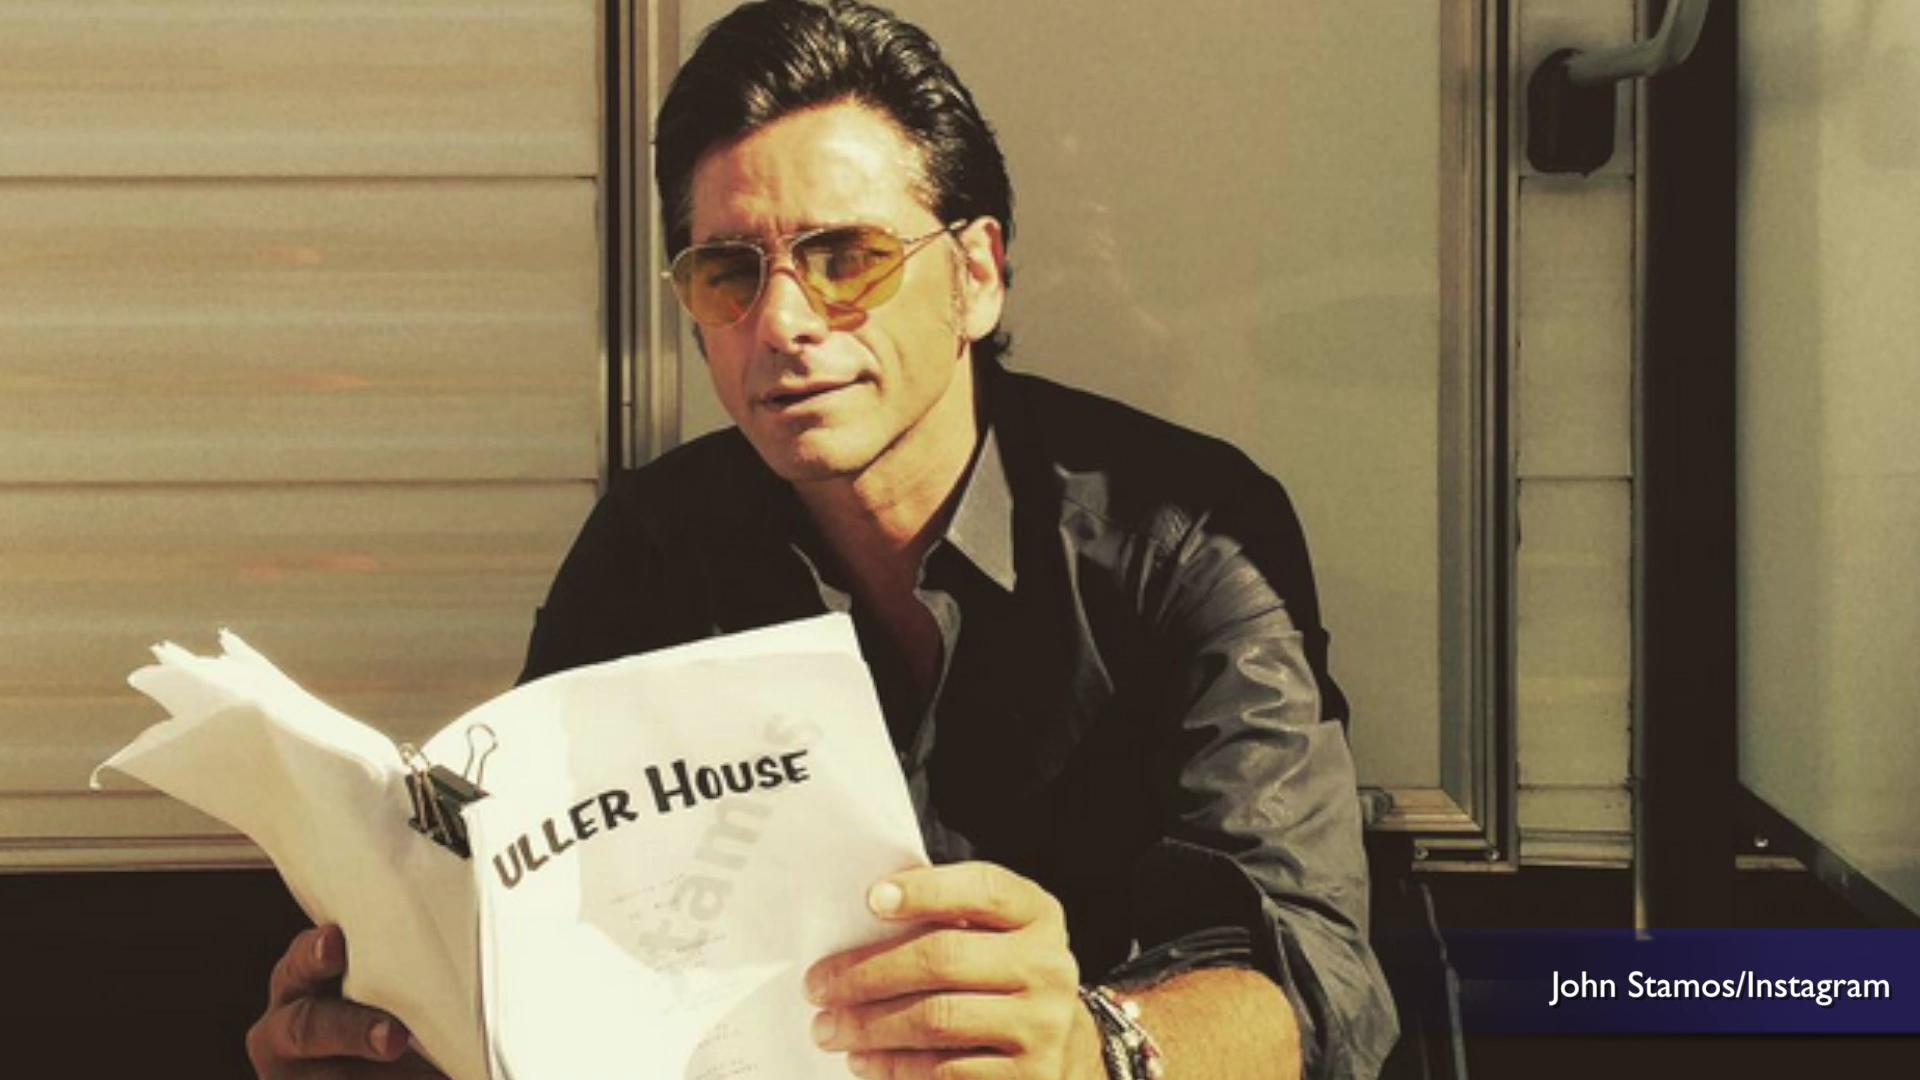 John Stamos posts new 'Fuller House' images on Instagram